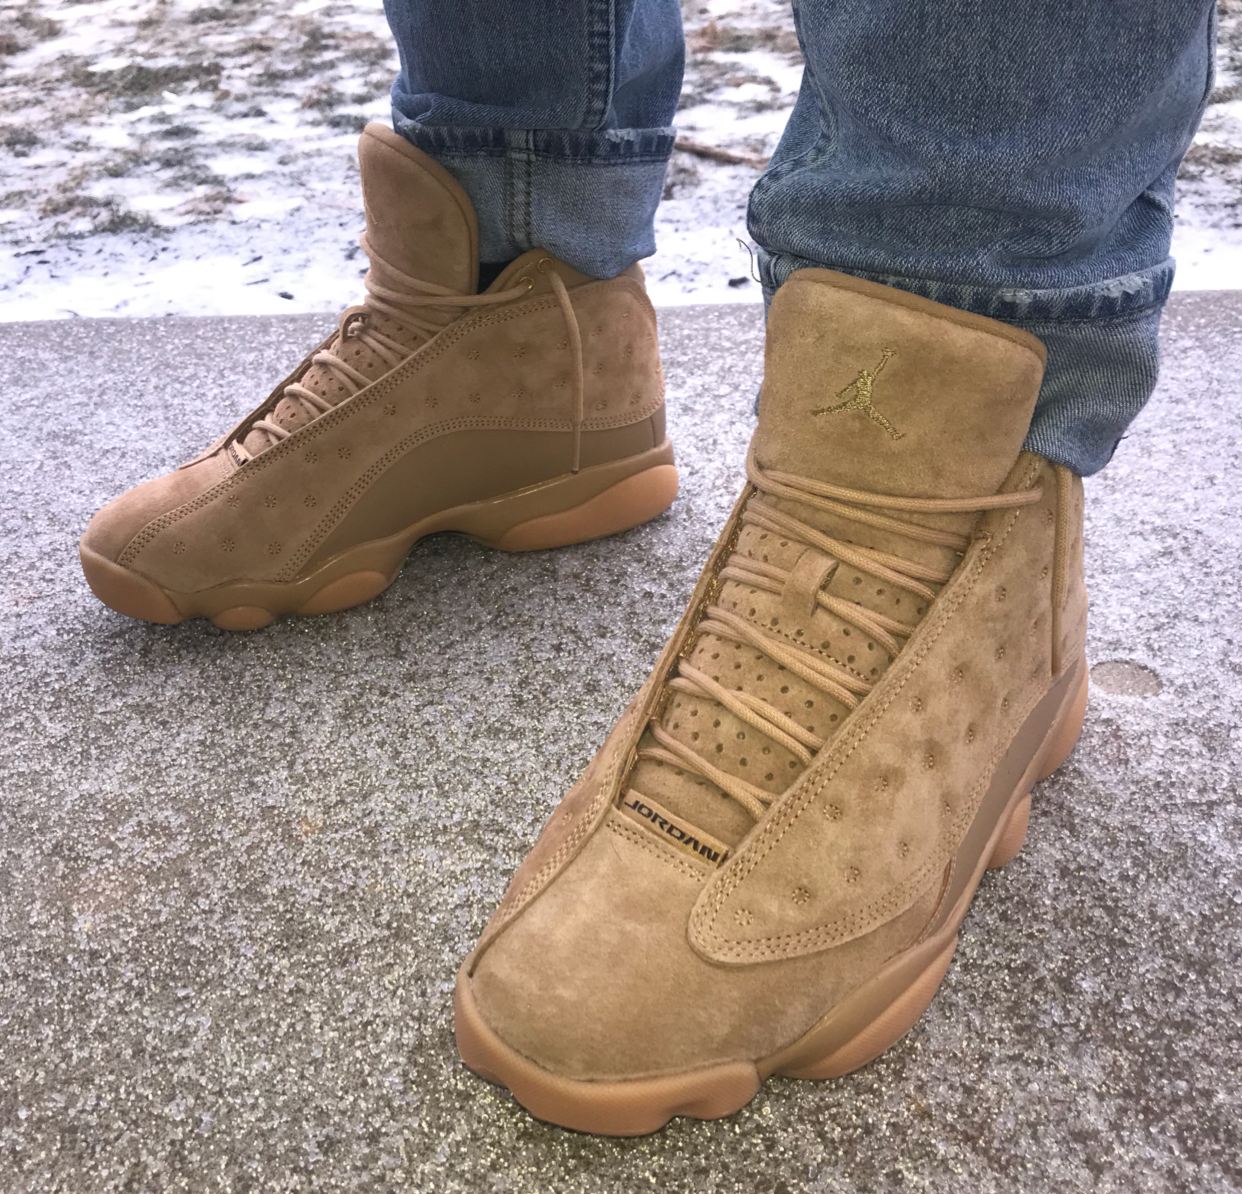 pretty nice 5596b 2eb4b Air Jordan 13 Wheat - KicksOnFire.com